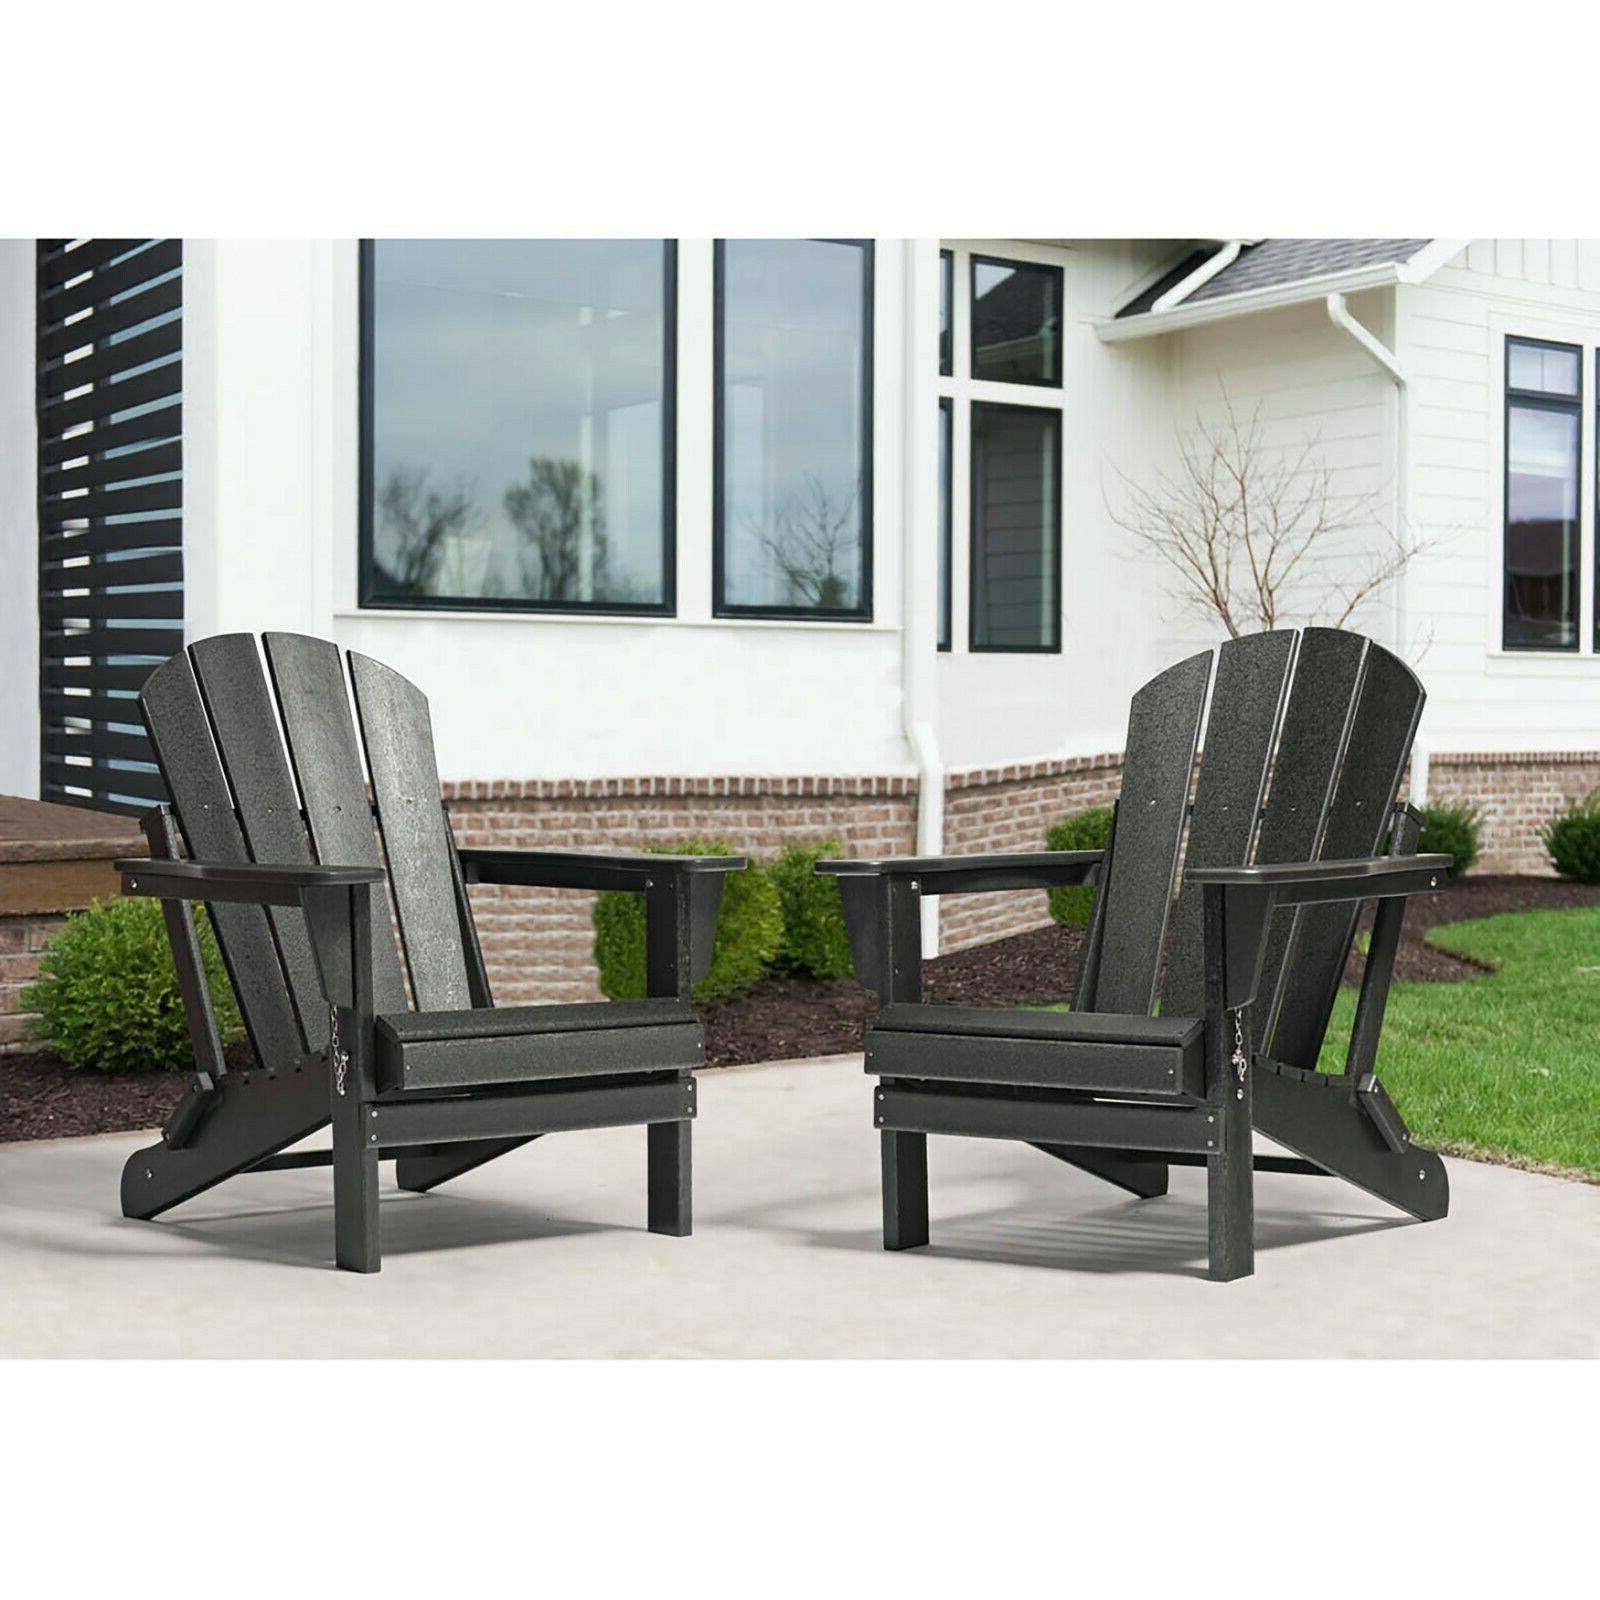 2 PCS WestinTrends Outdoor Patio Chairs Plastic